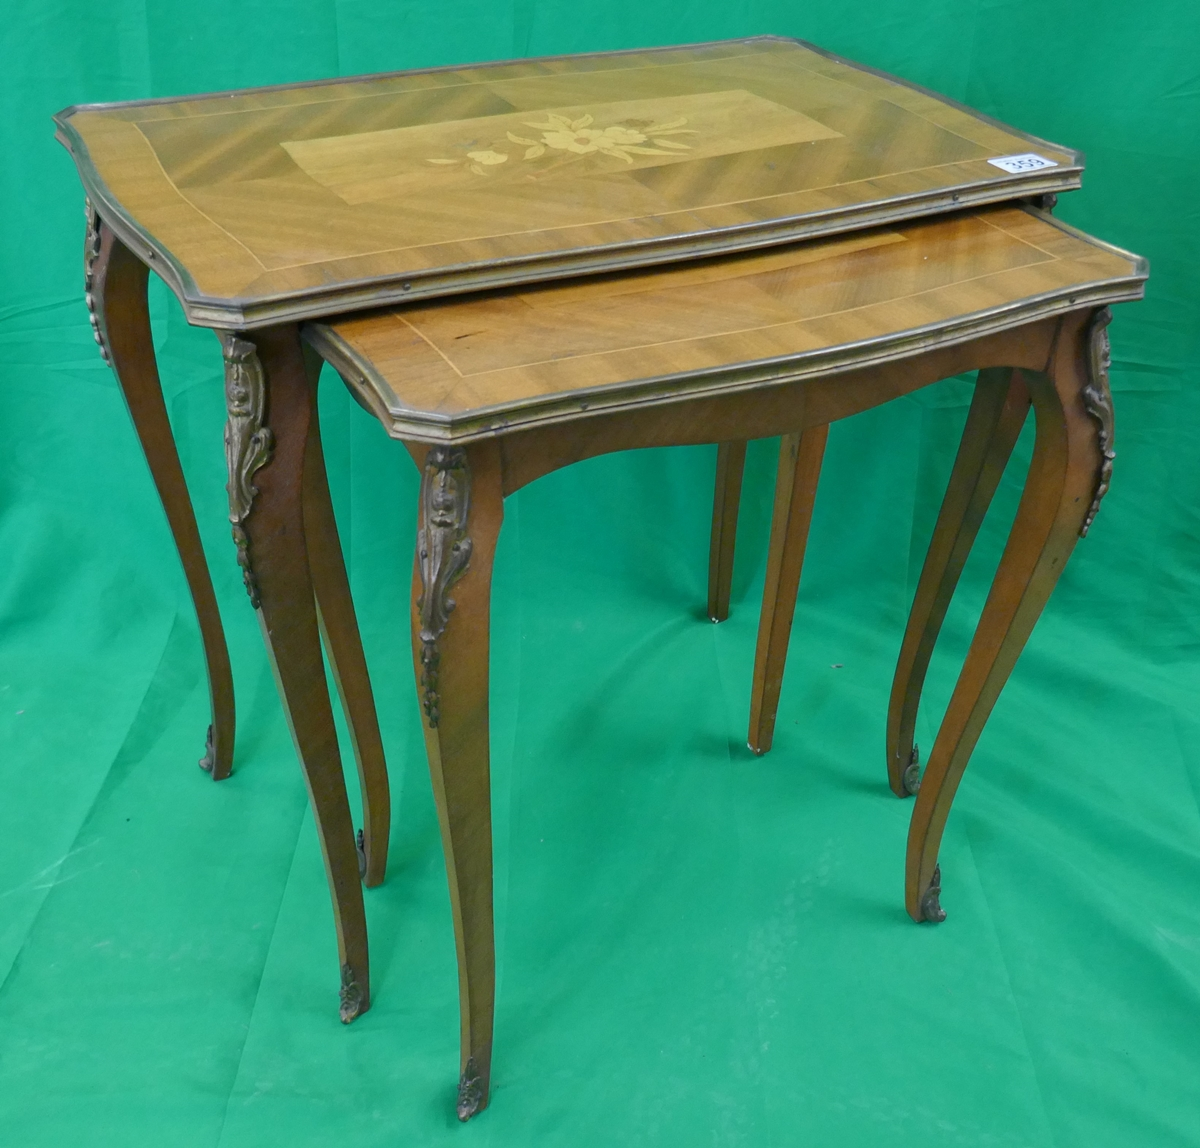 Nest of 2 French inlaid tables with Ormolu mounts